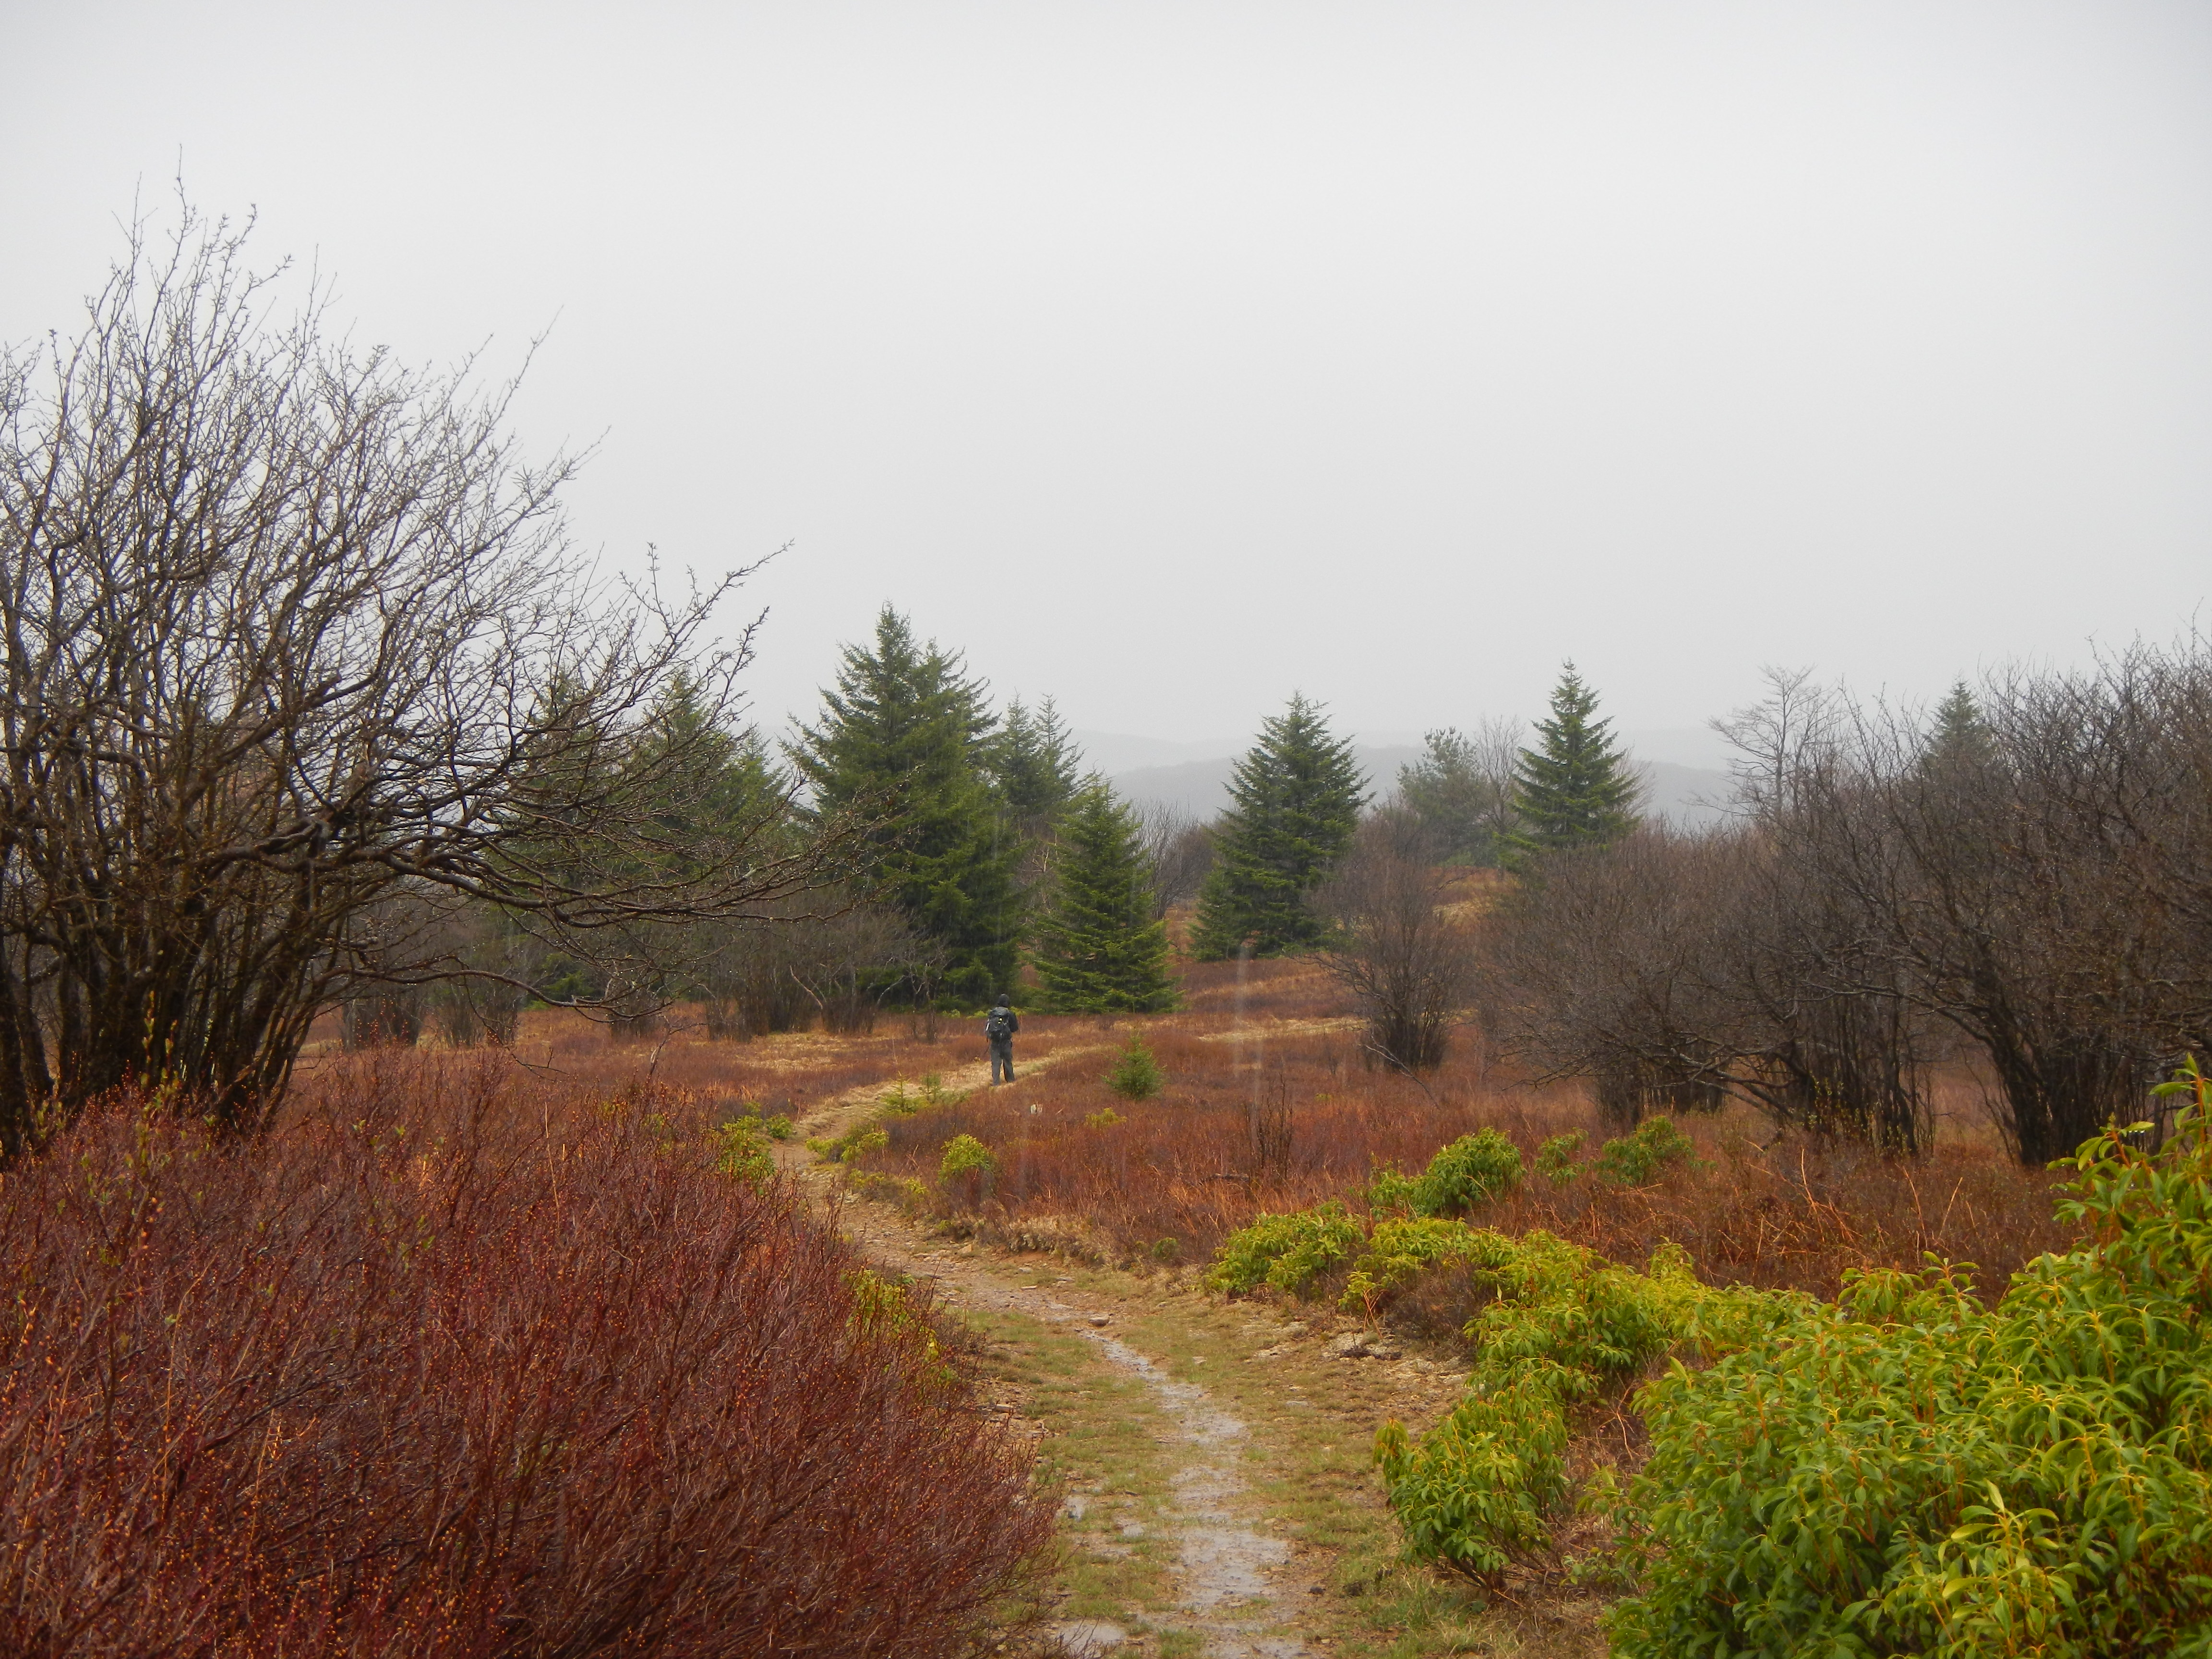 Hiking the Dolly Sods - Roads Rivers and Trails